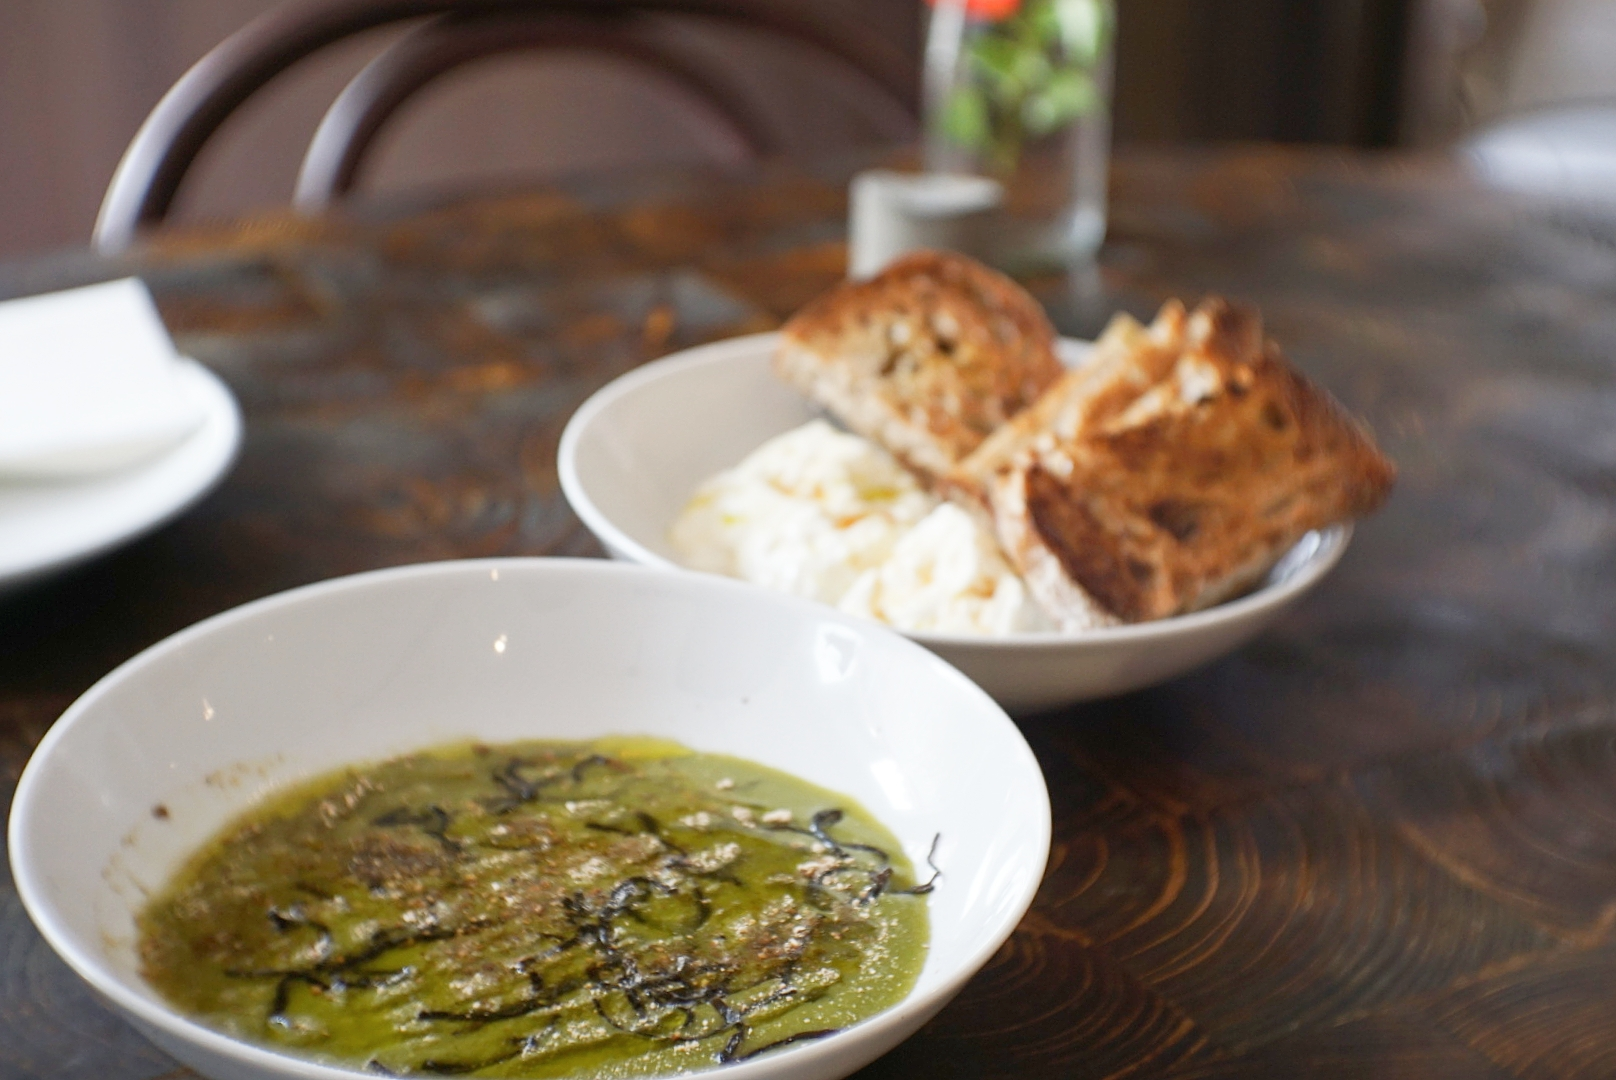 The barley porridge was served together with burrata and sourdough.